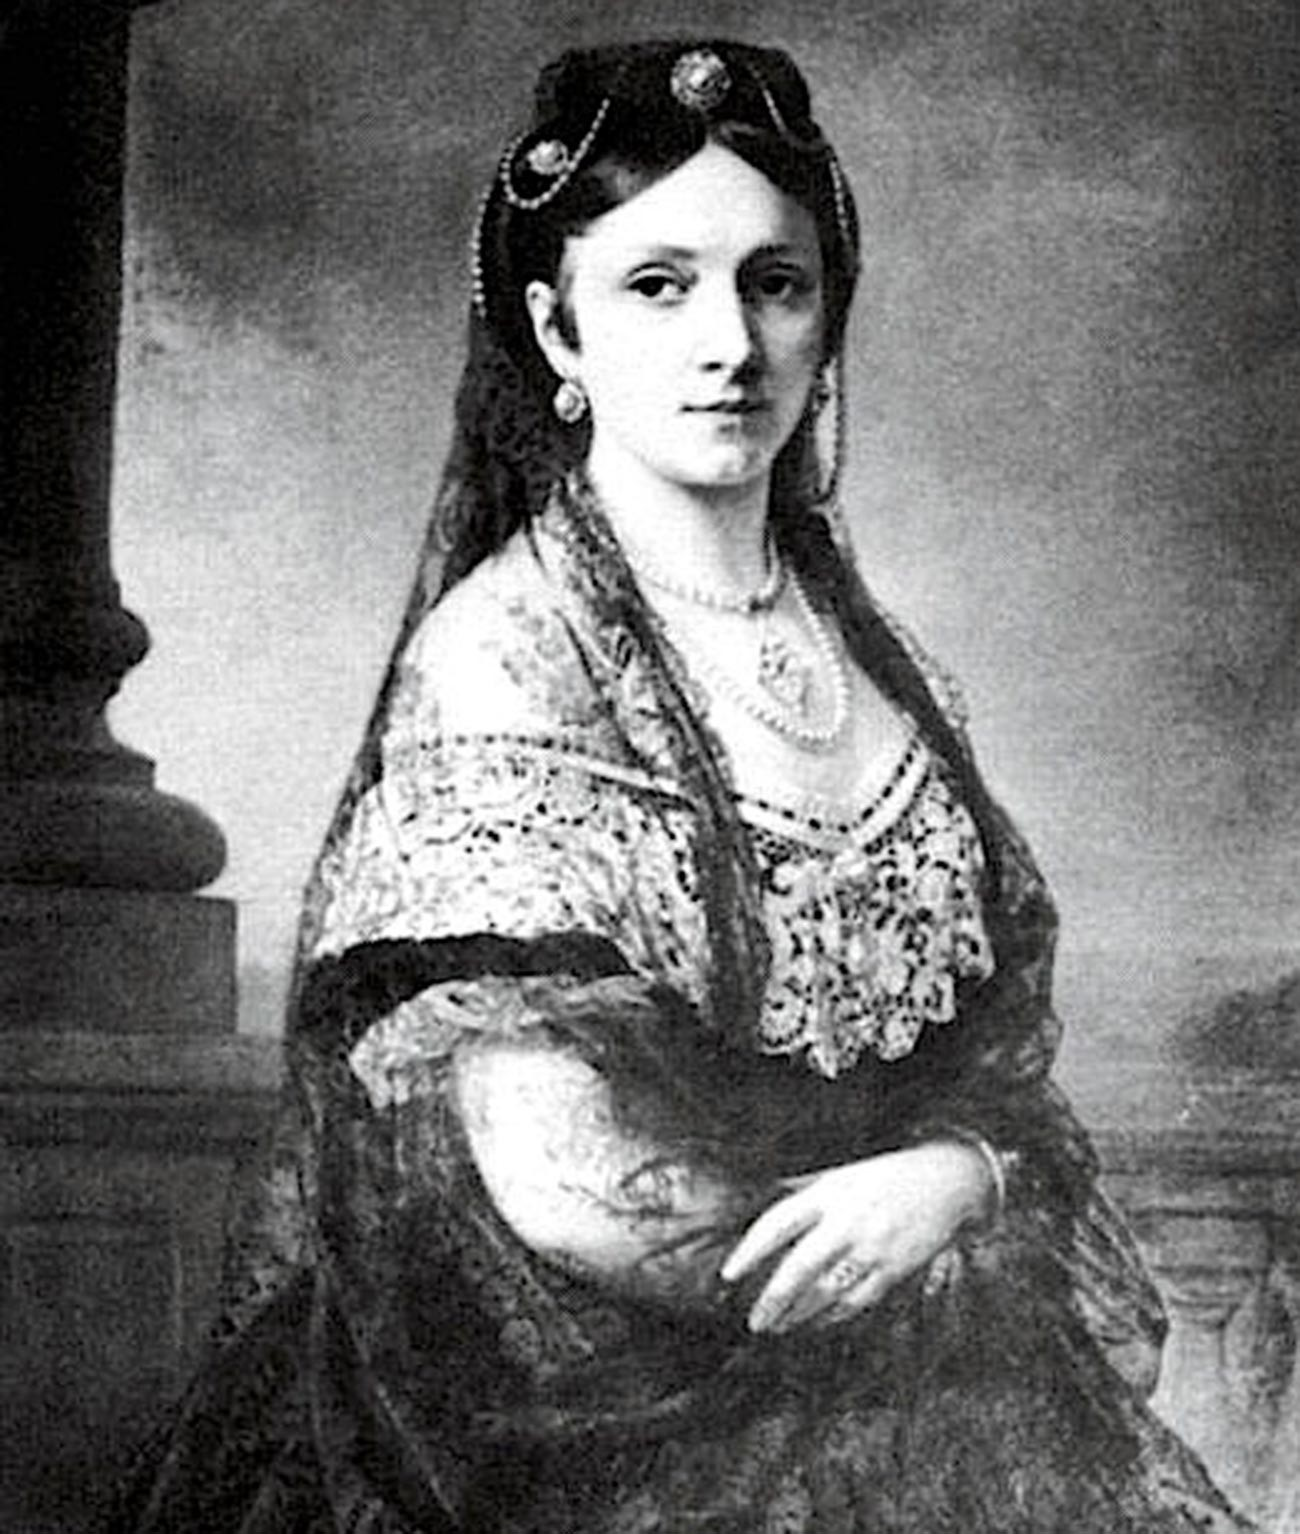 Julia Hauke, Princess von Battenberg